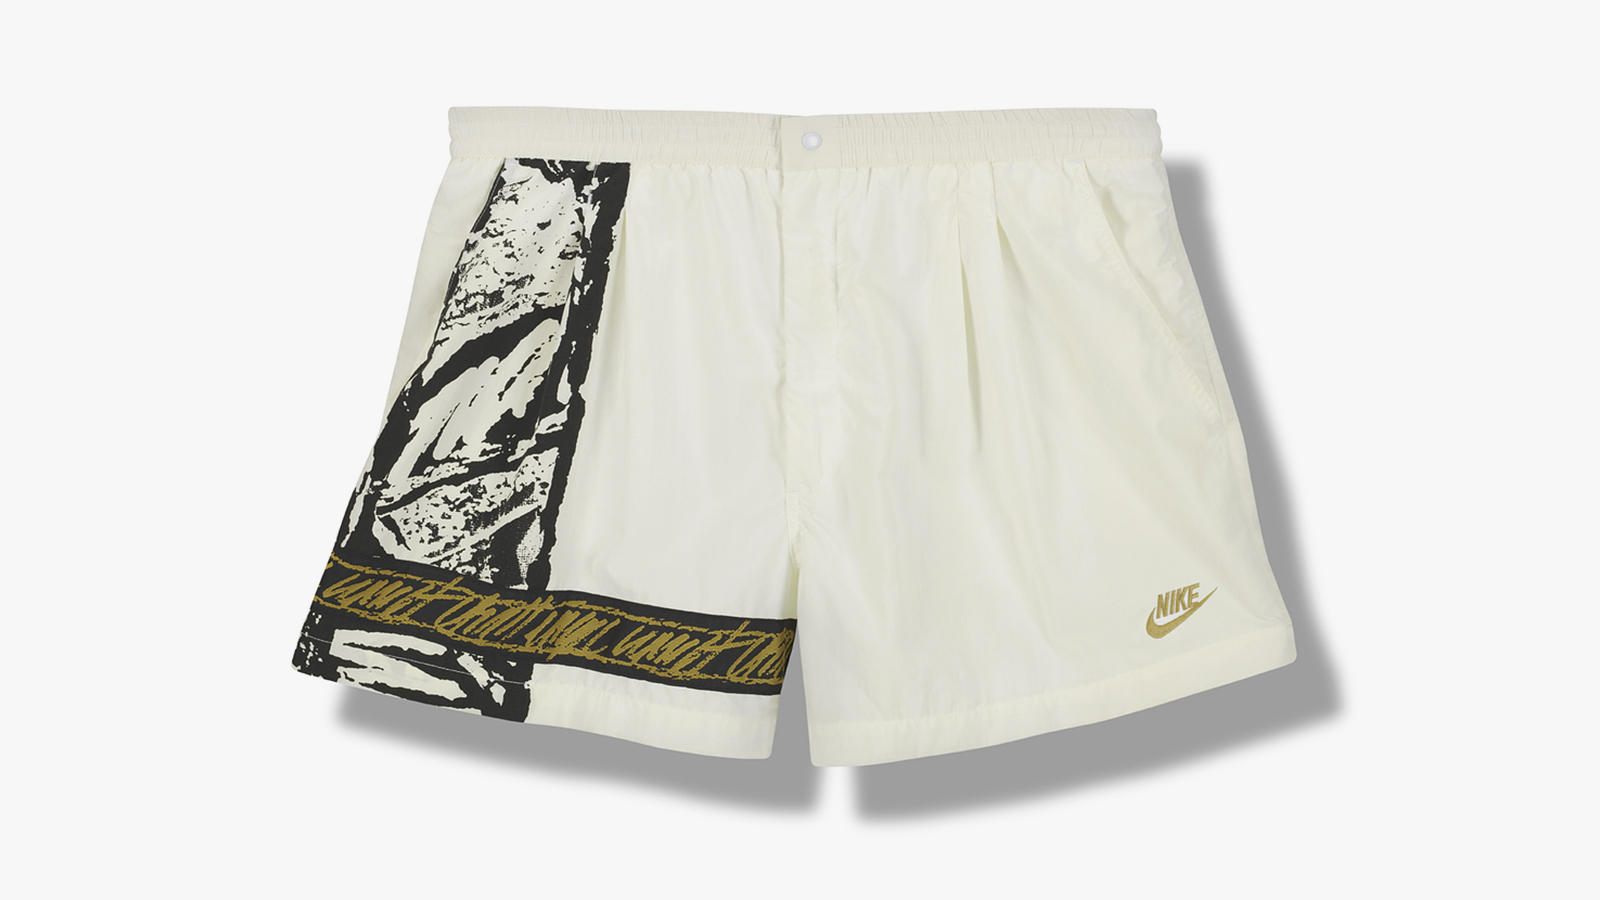 1992-Nike-Statement-Shorts